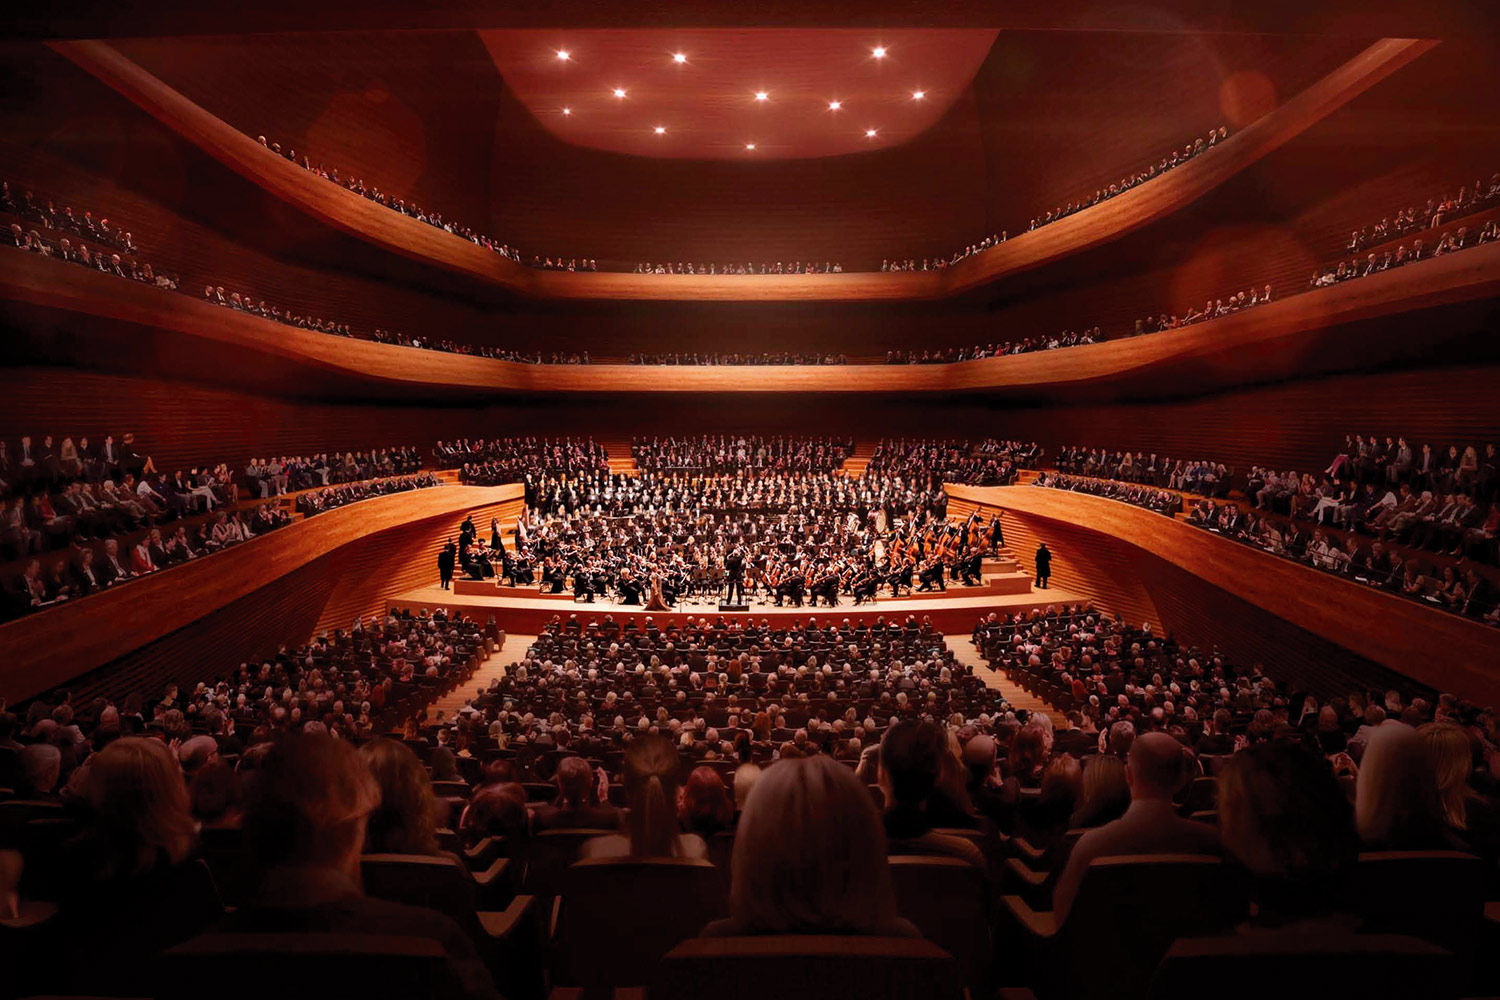 Interior view of the new Concert Hall in Munich